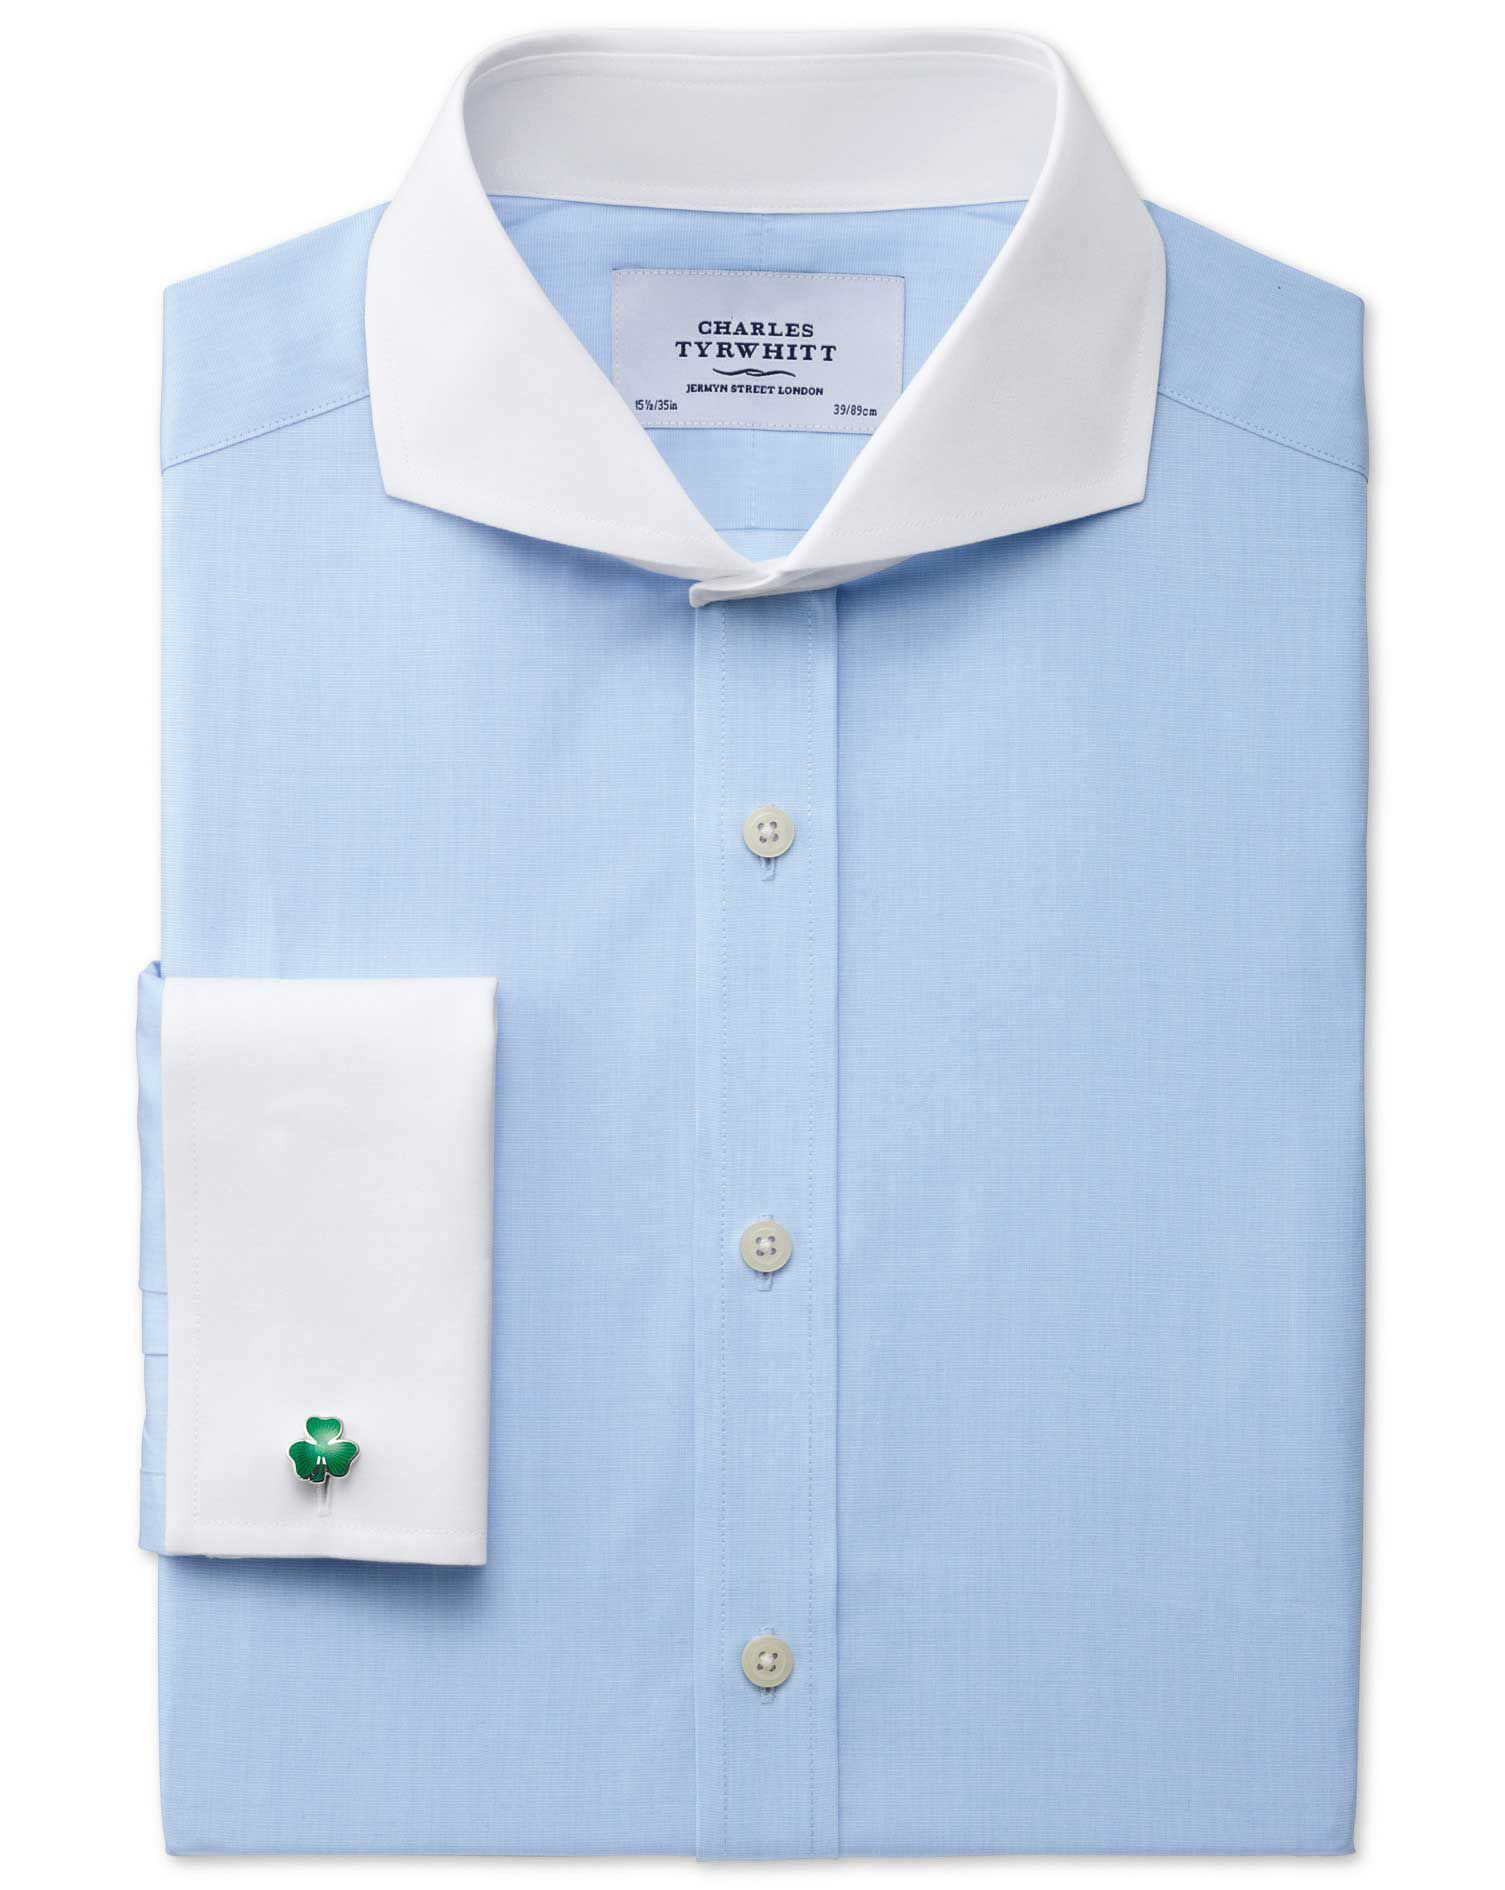 Extra Slim Fit Extreme Cutaway Collar End-On-End Sky Blue Cotton Formal Shirt Single Cuff Size 16/34